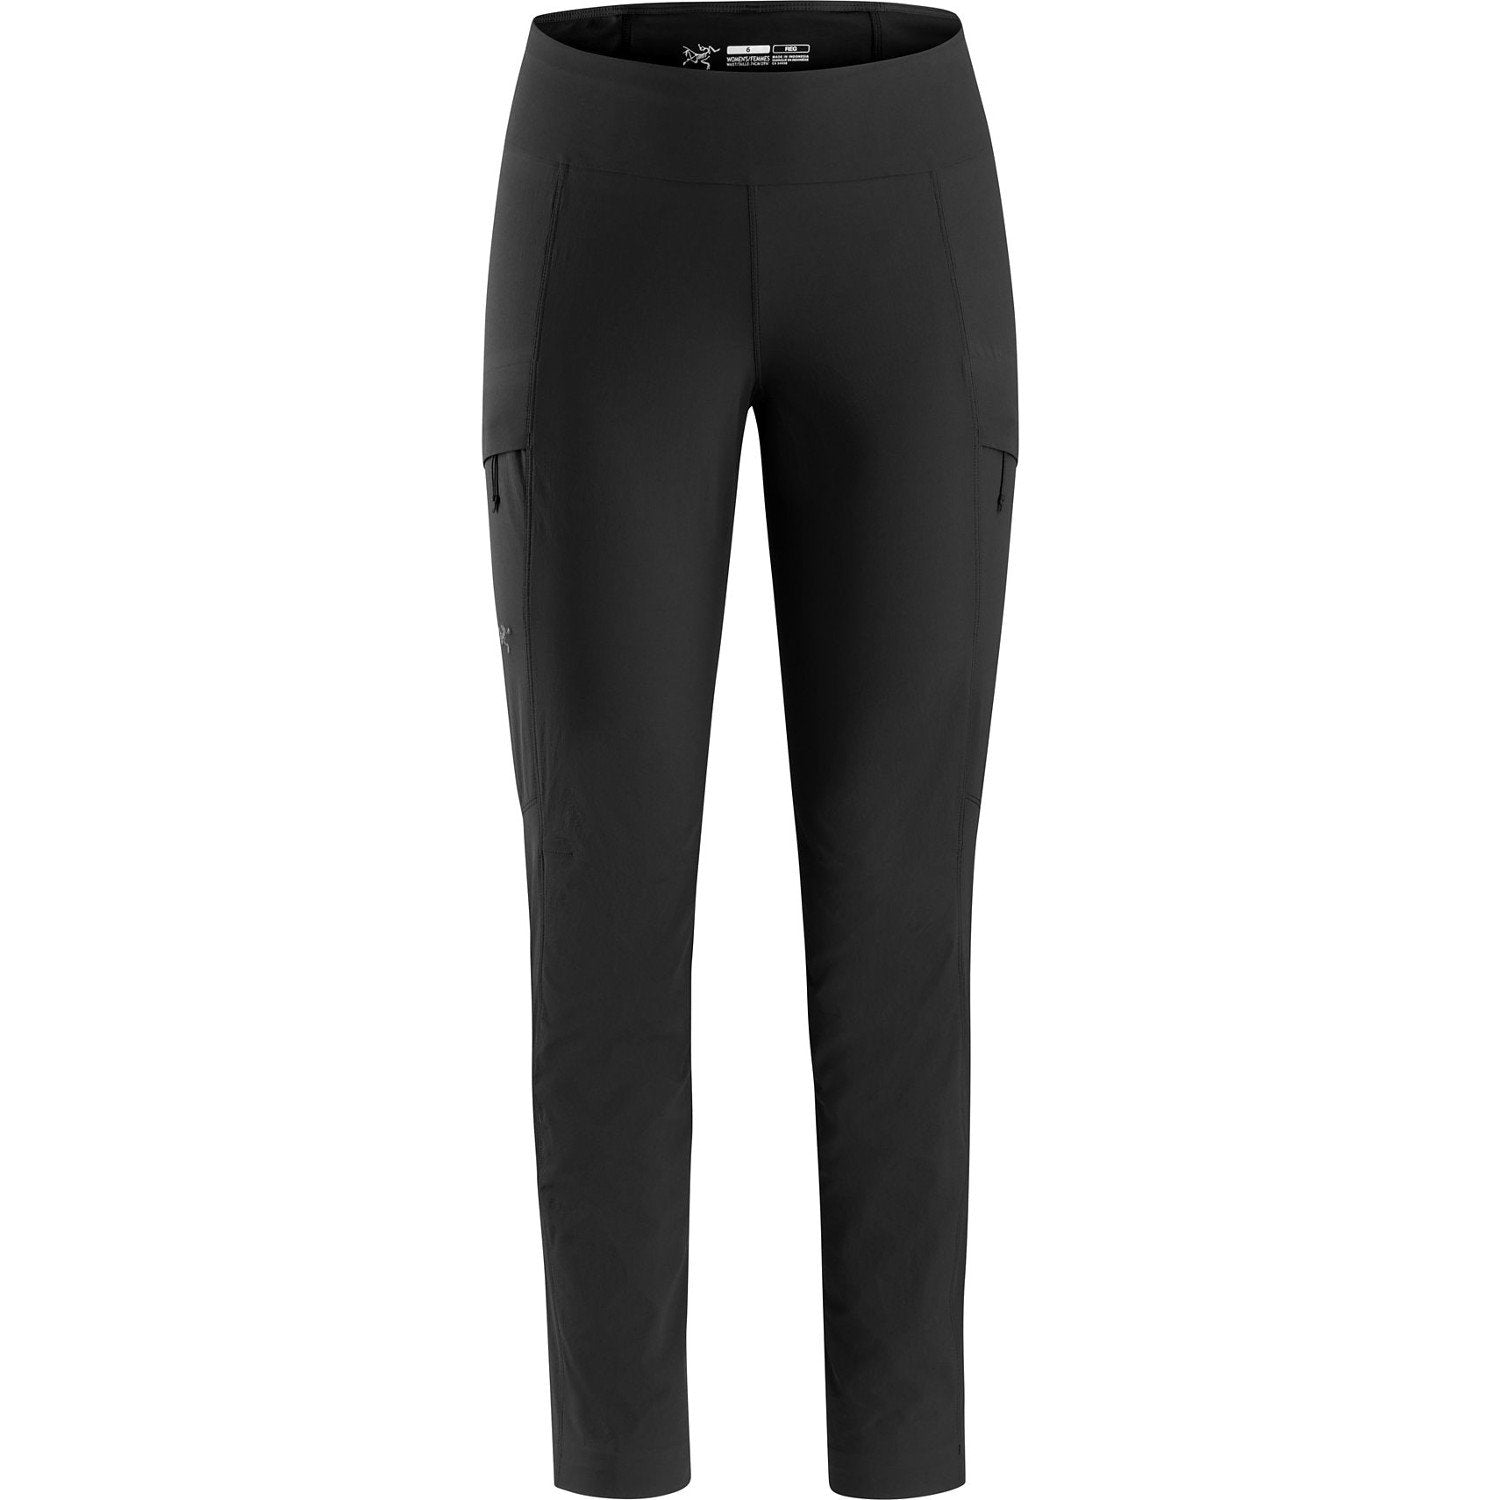 ArcTeryx Sabria Women's Pant in Black